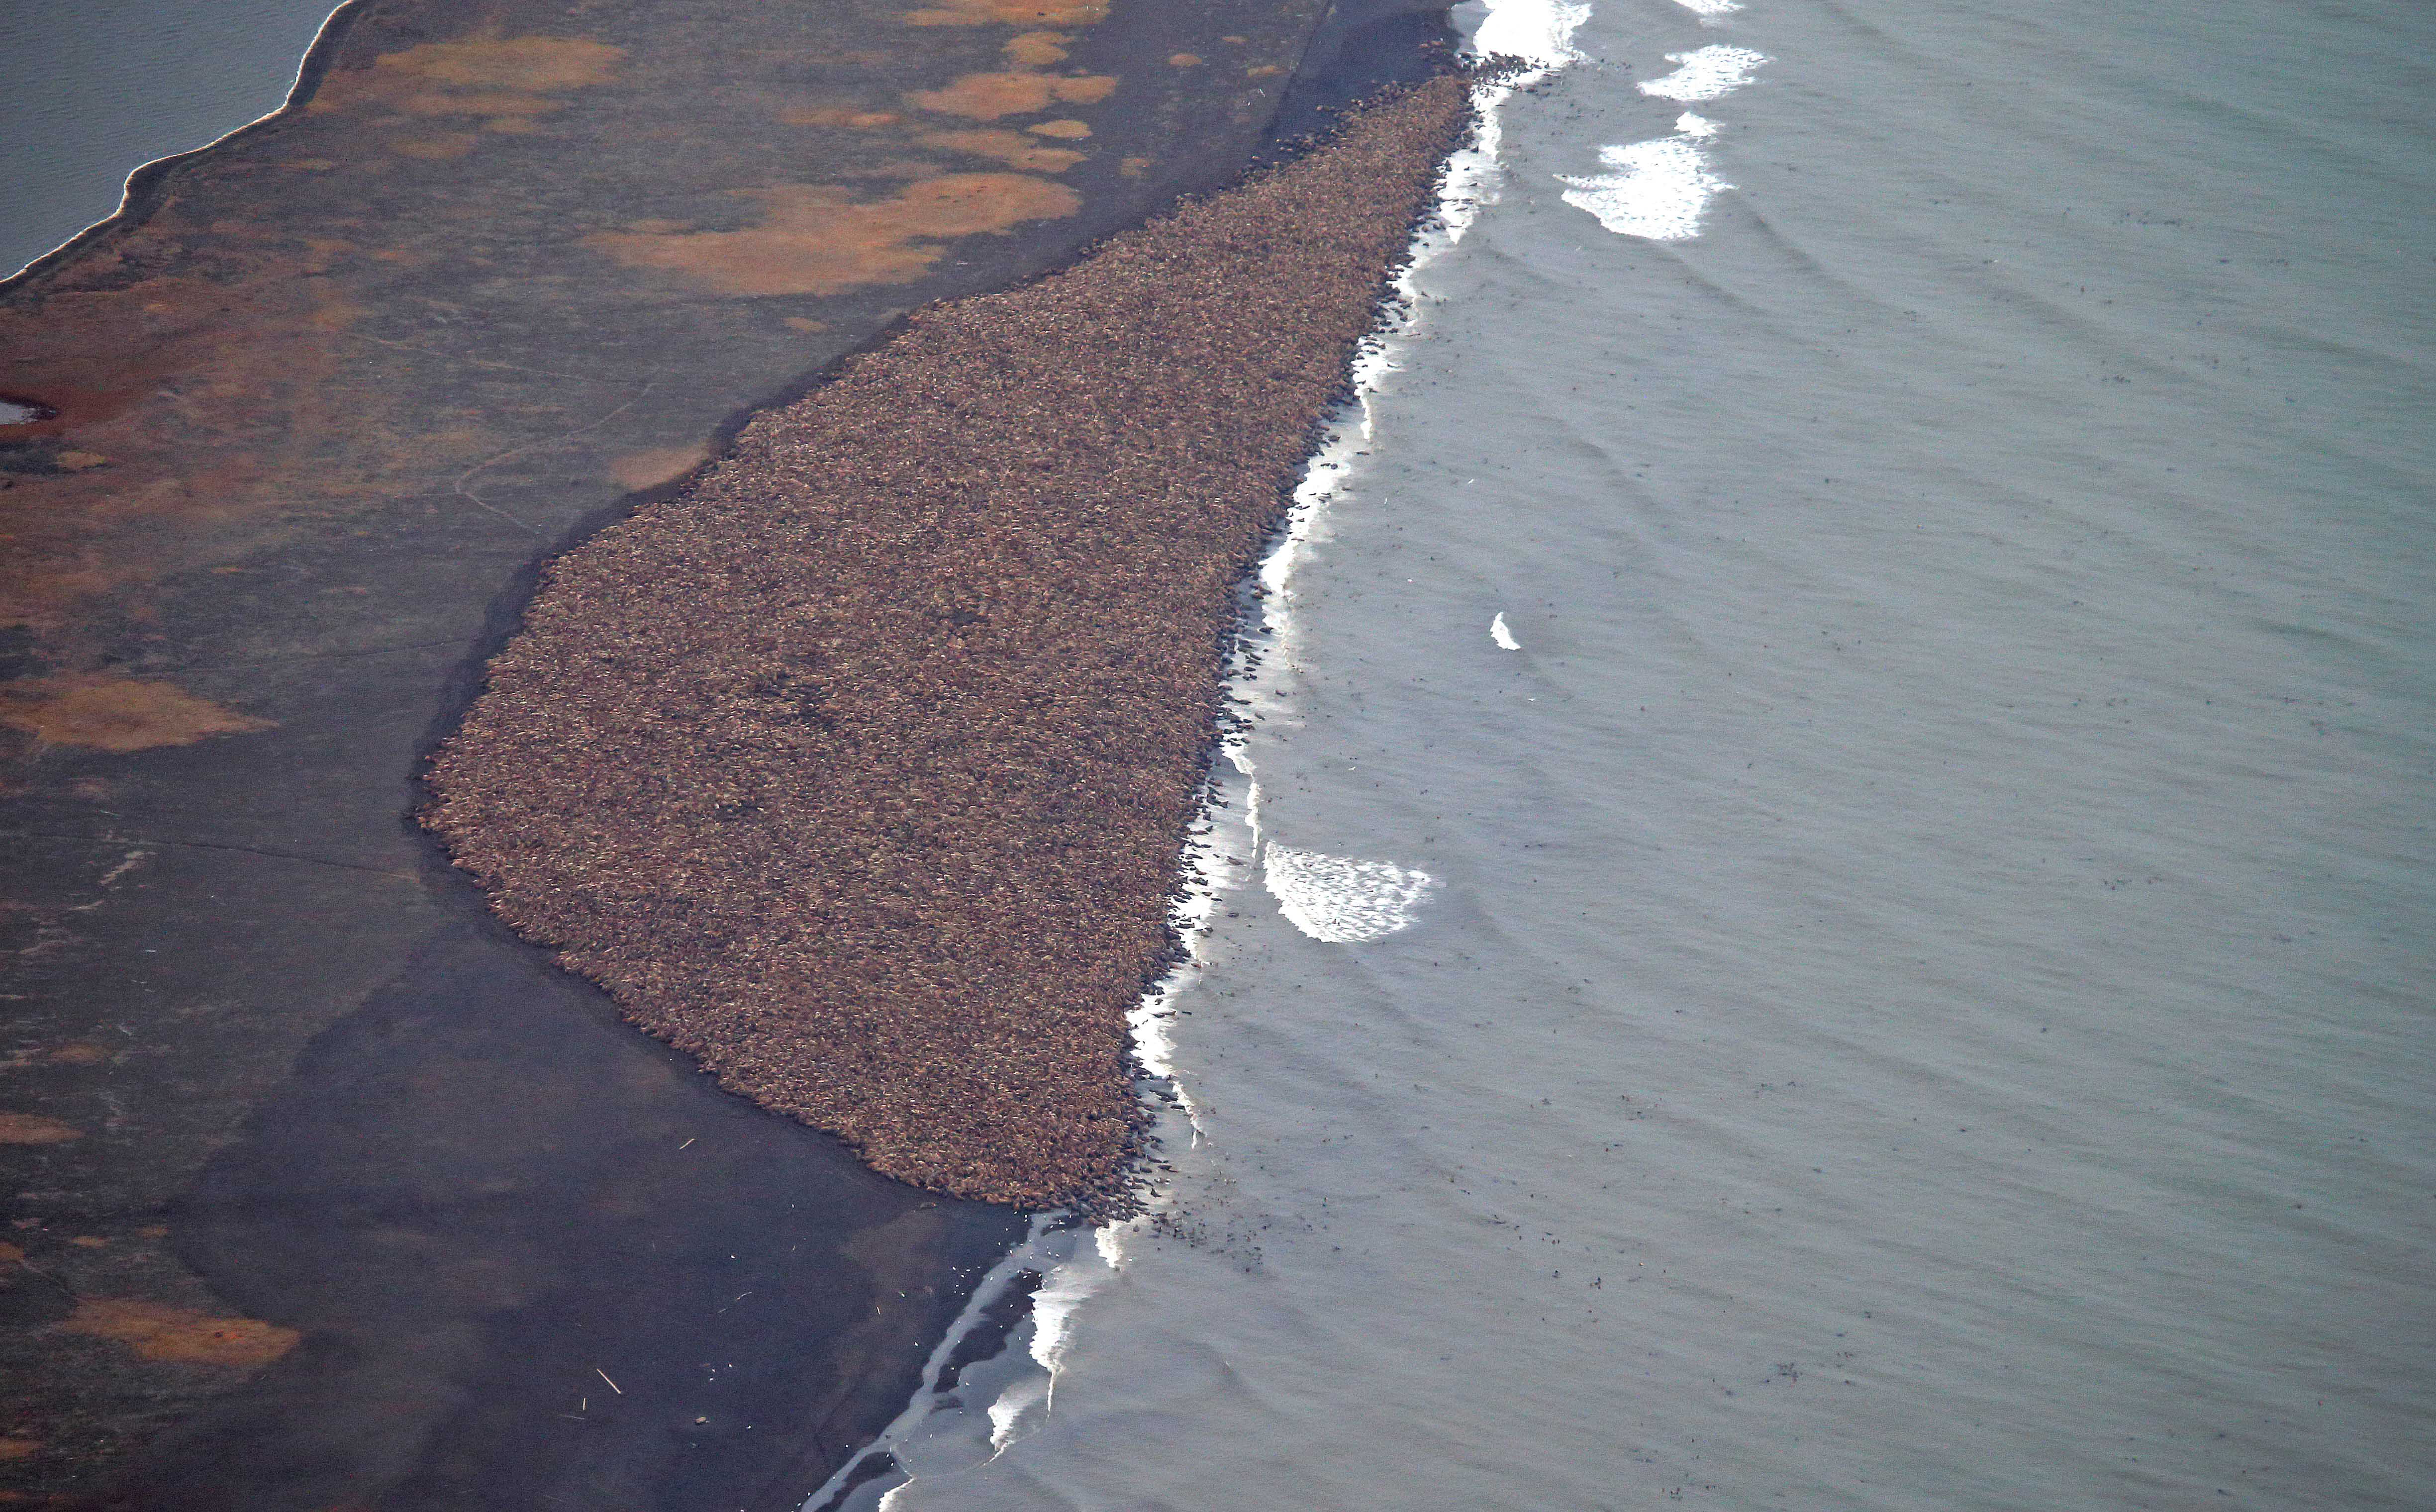 Some 35,000 walrus gather on shore near Point Lay, Alaska on Sept. 27, 2014. The enormous gathering was spotted during NOAA's annual Arctic marine mammal aerial survey. (Corey Accardo / NOAA / AP)